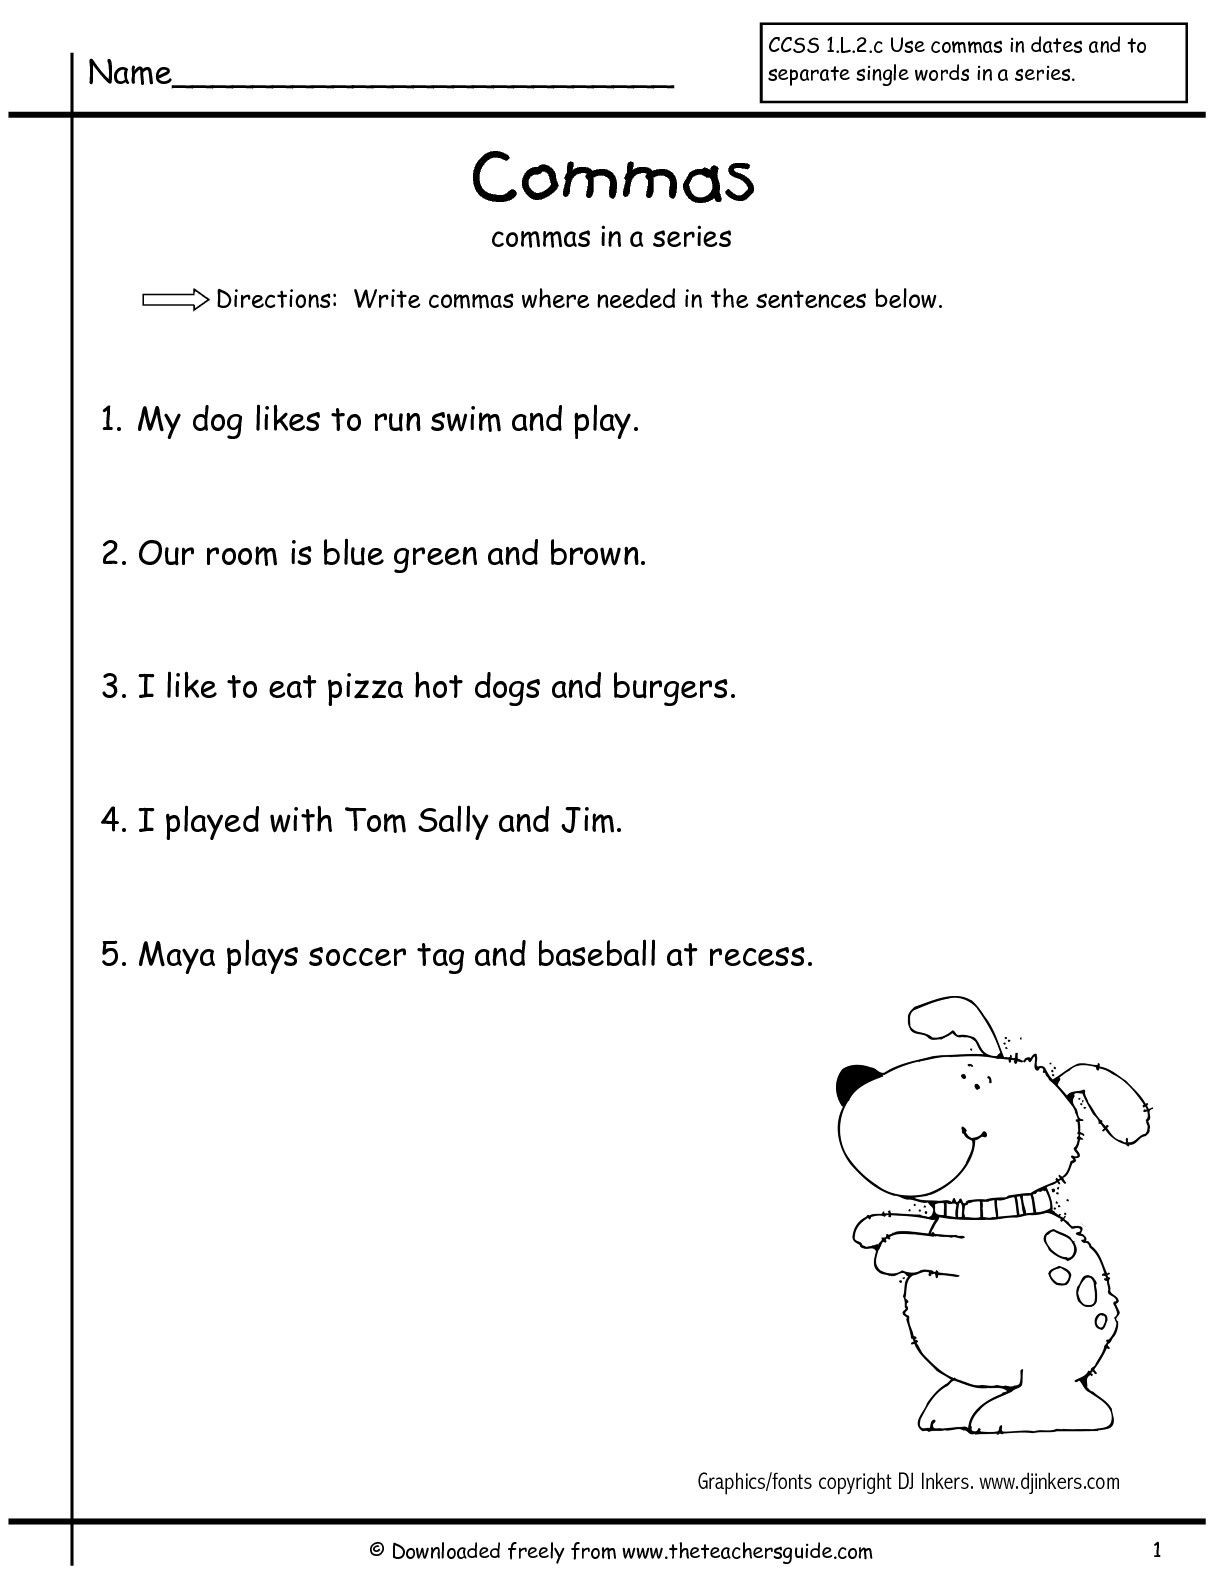 Sentence Correction Worksheets 2nd Grade